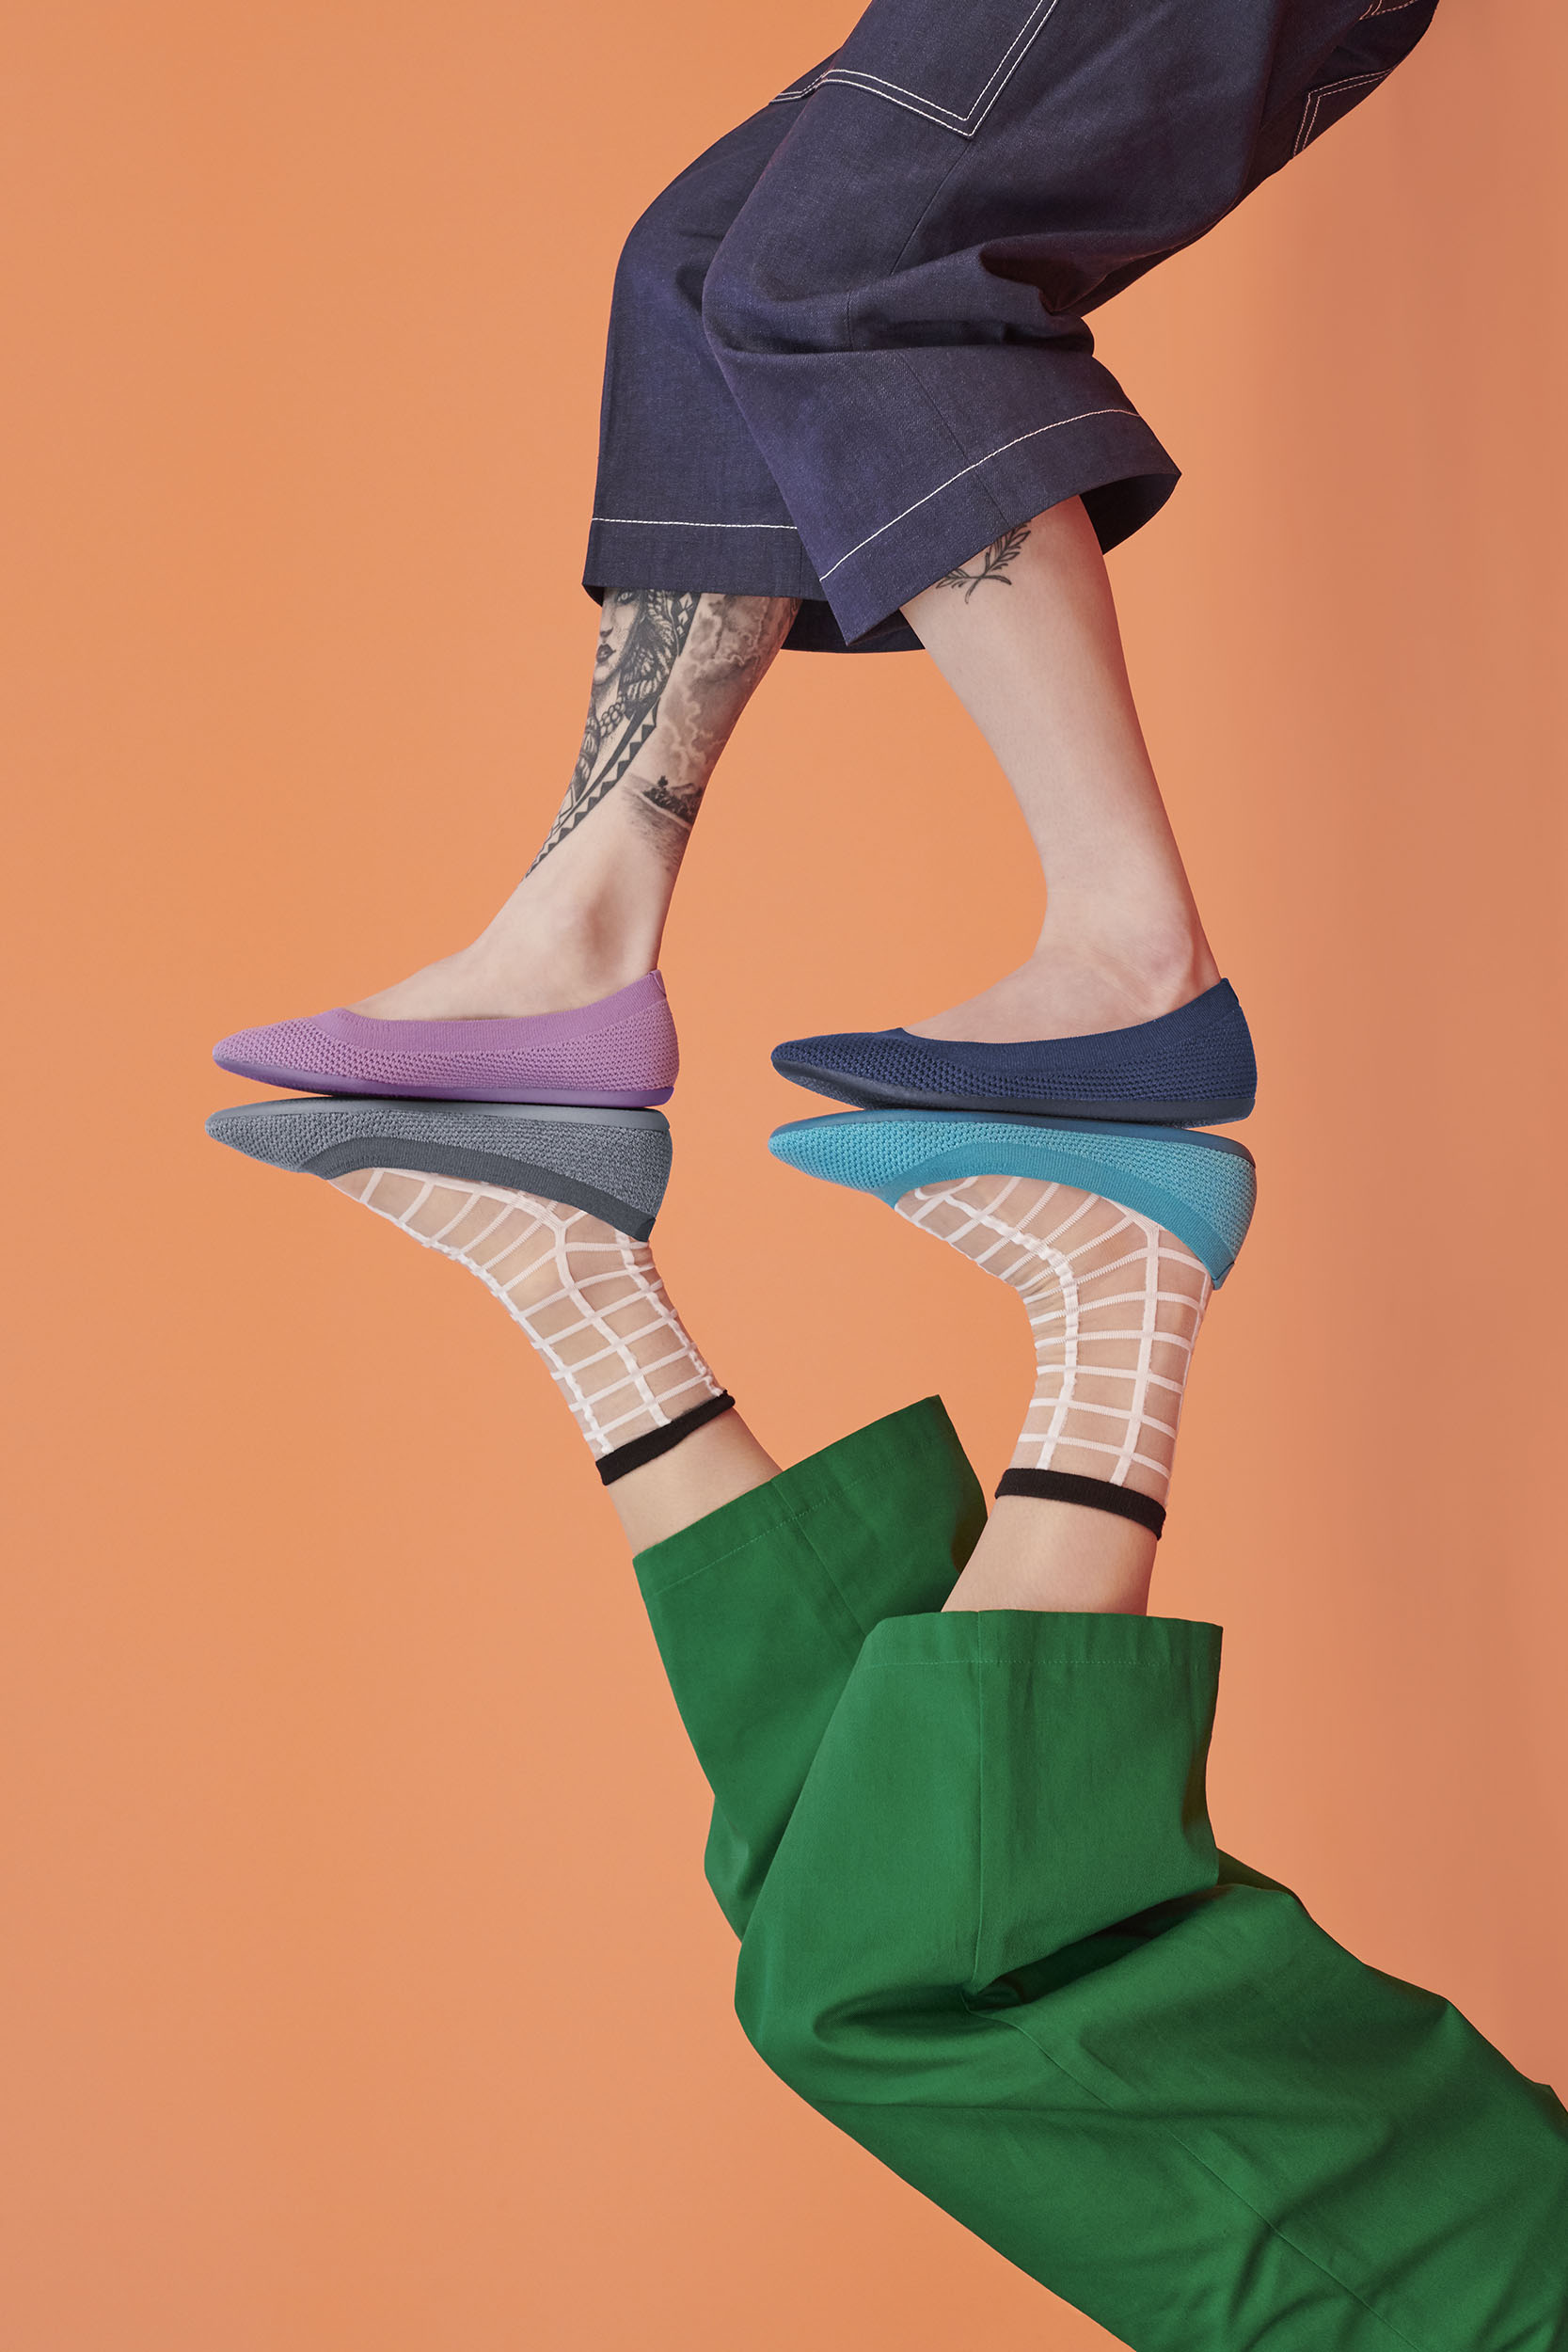 Allbirds new line of flats, called the Tree Breezer